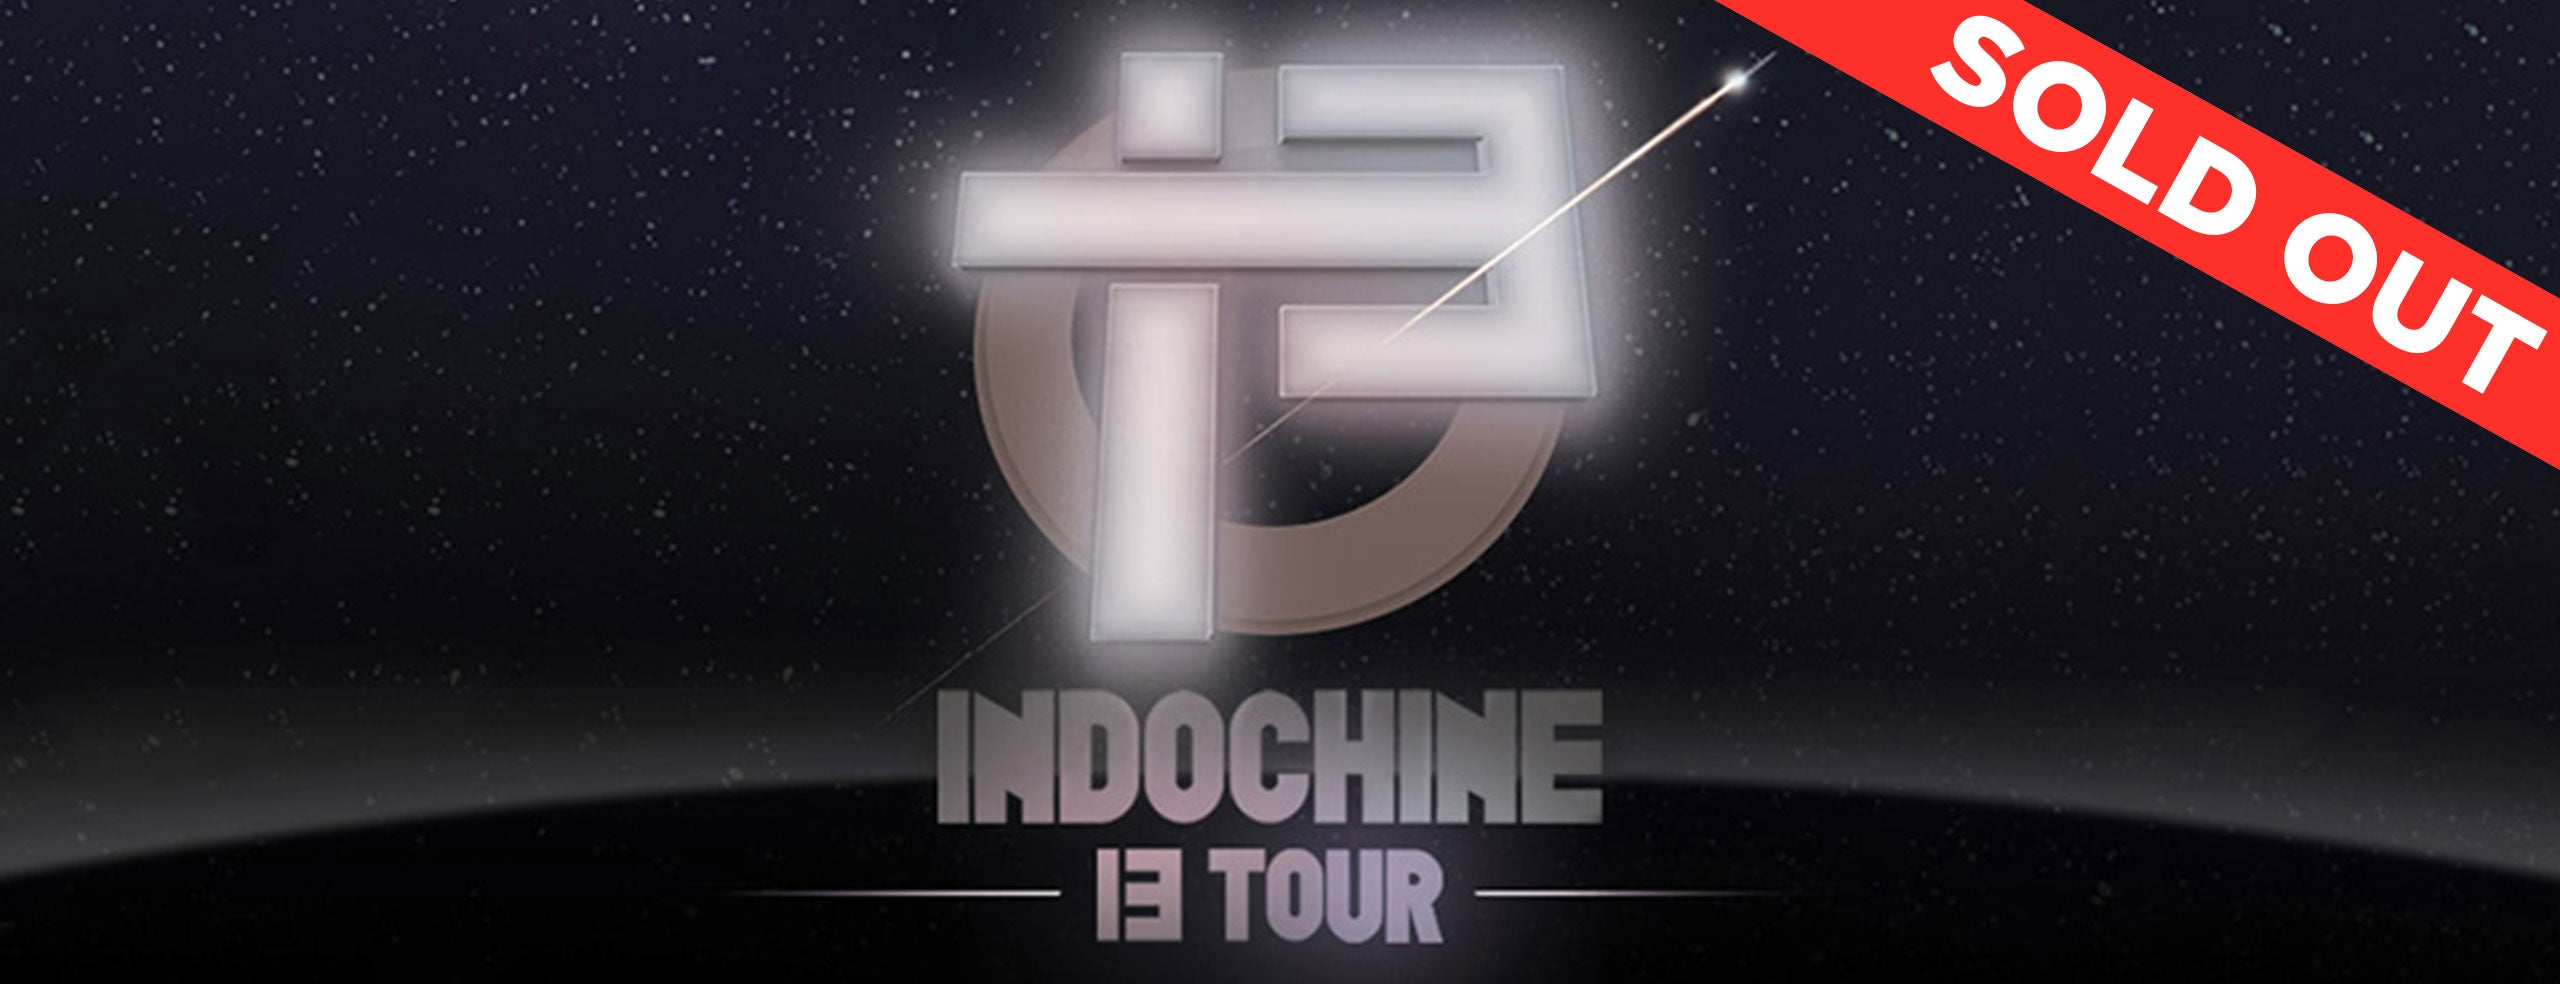 2560x984---Slider-Big-Indochine.jpg